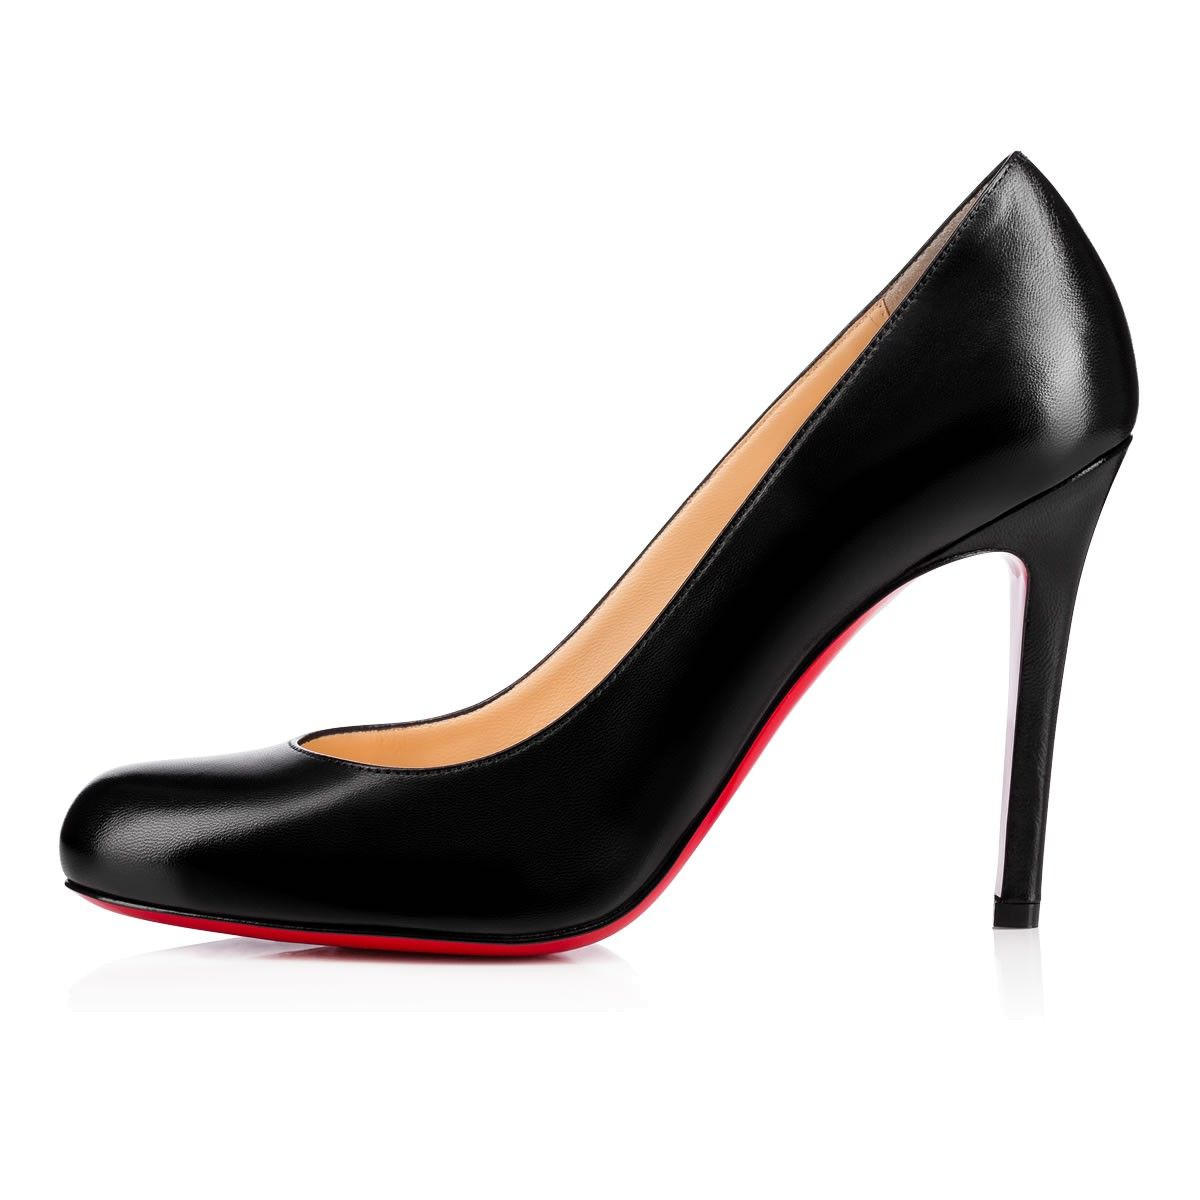 7caeec3bdd4 Christian Louboutin Simple Pump | Shoes and Boots | Christian ...